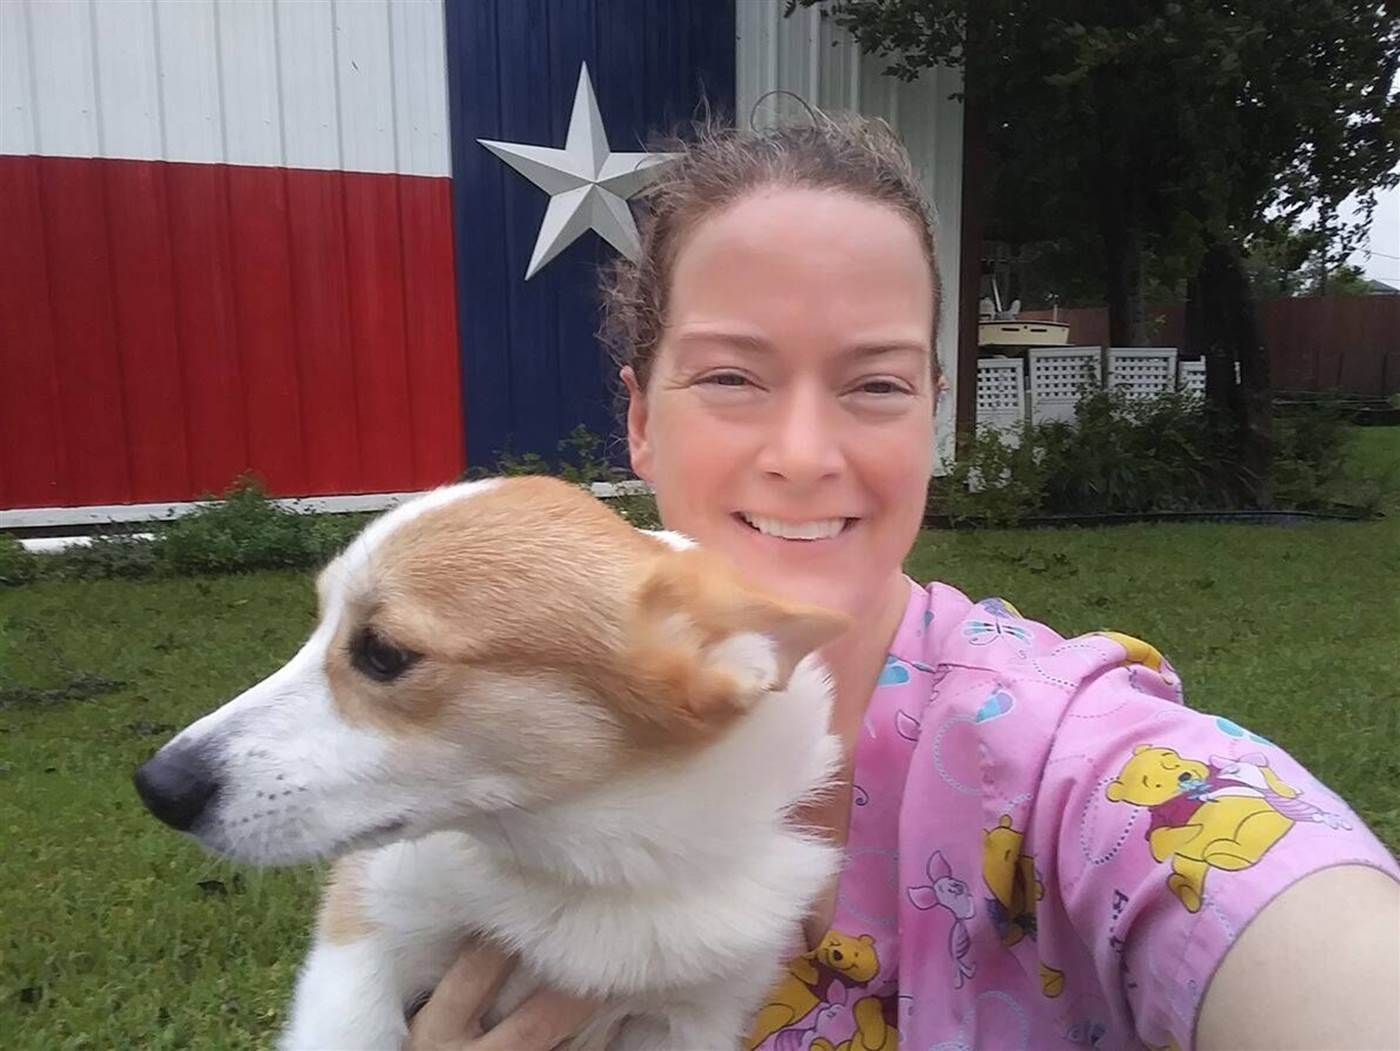 Meet the woman who refused to abandon 20 dogs to Harvey